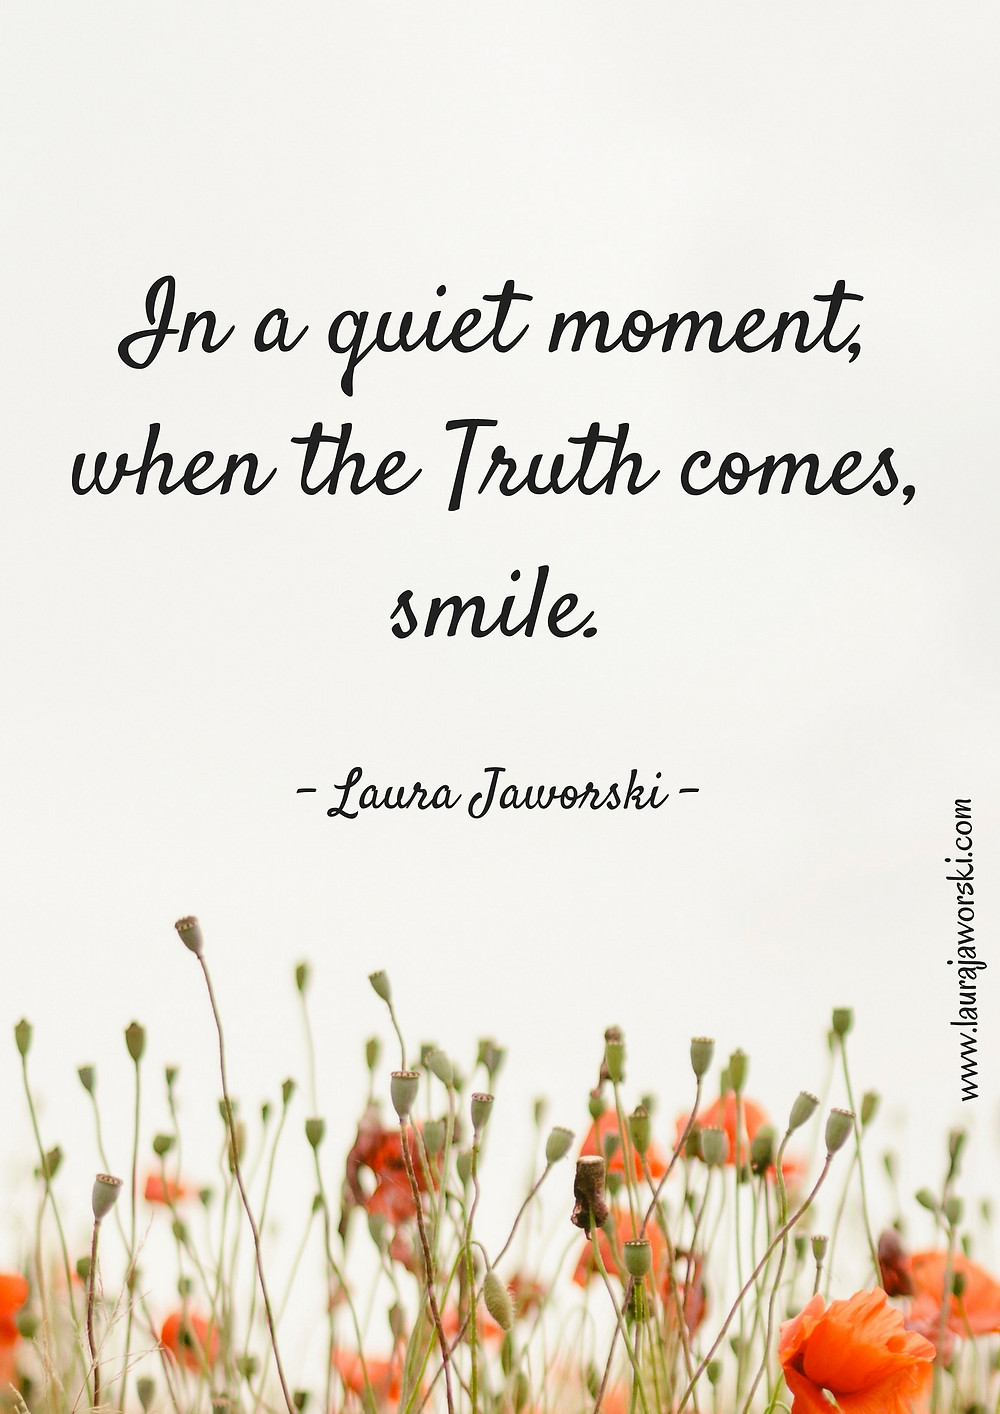 """In a quiet moment, when the Truth comes, smile."" ~ Laura Jaworski"